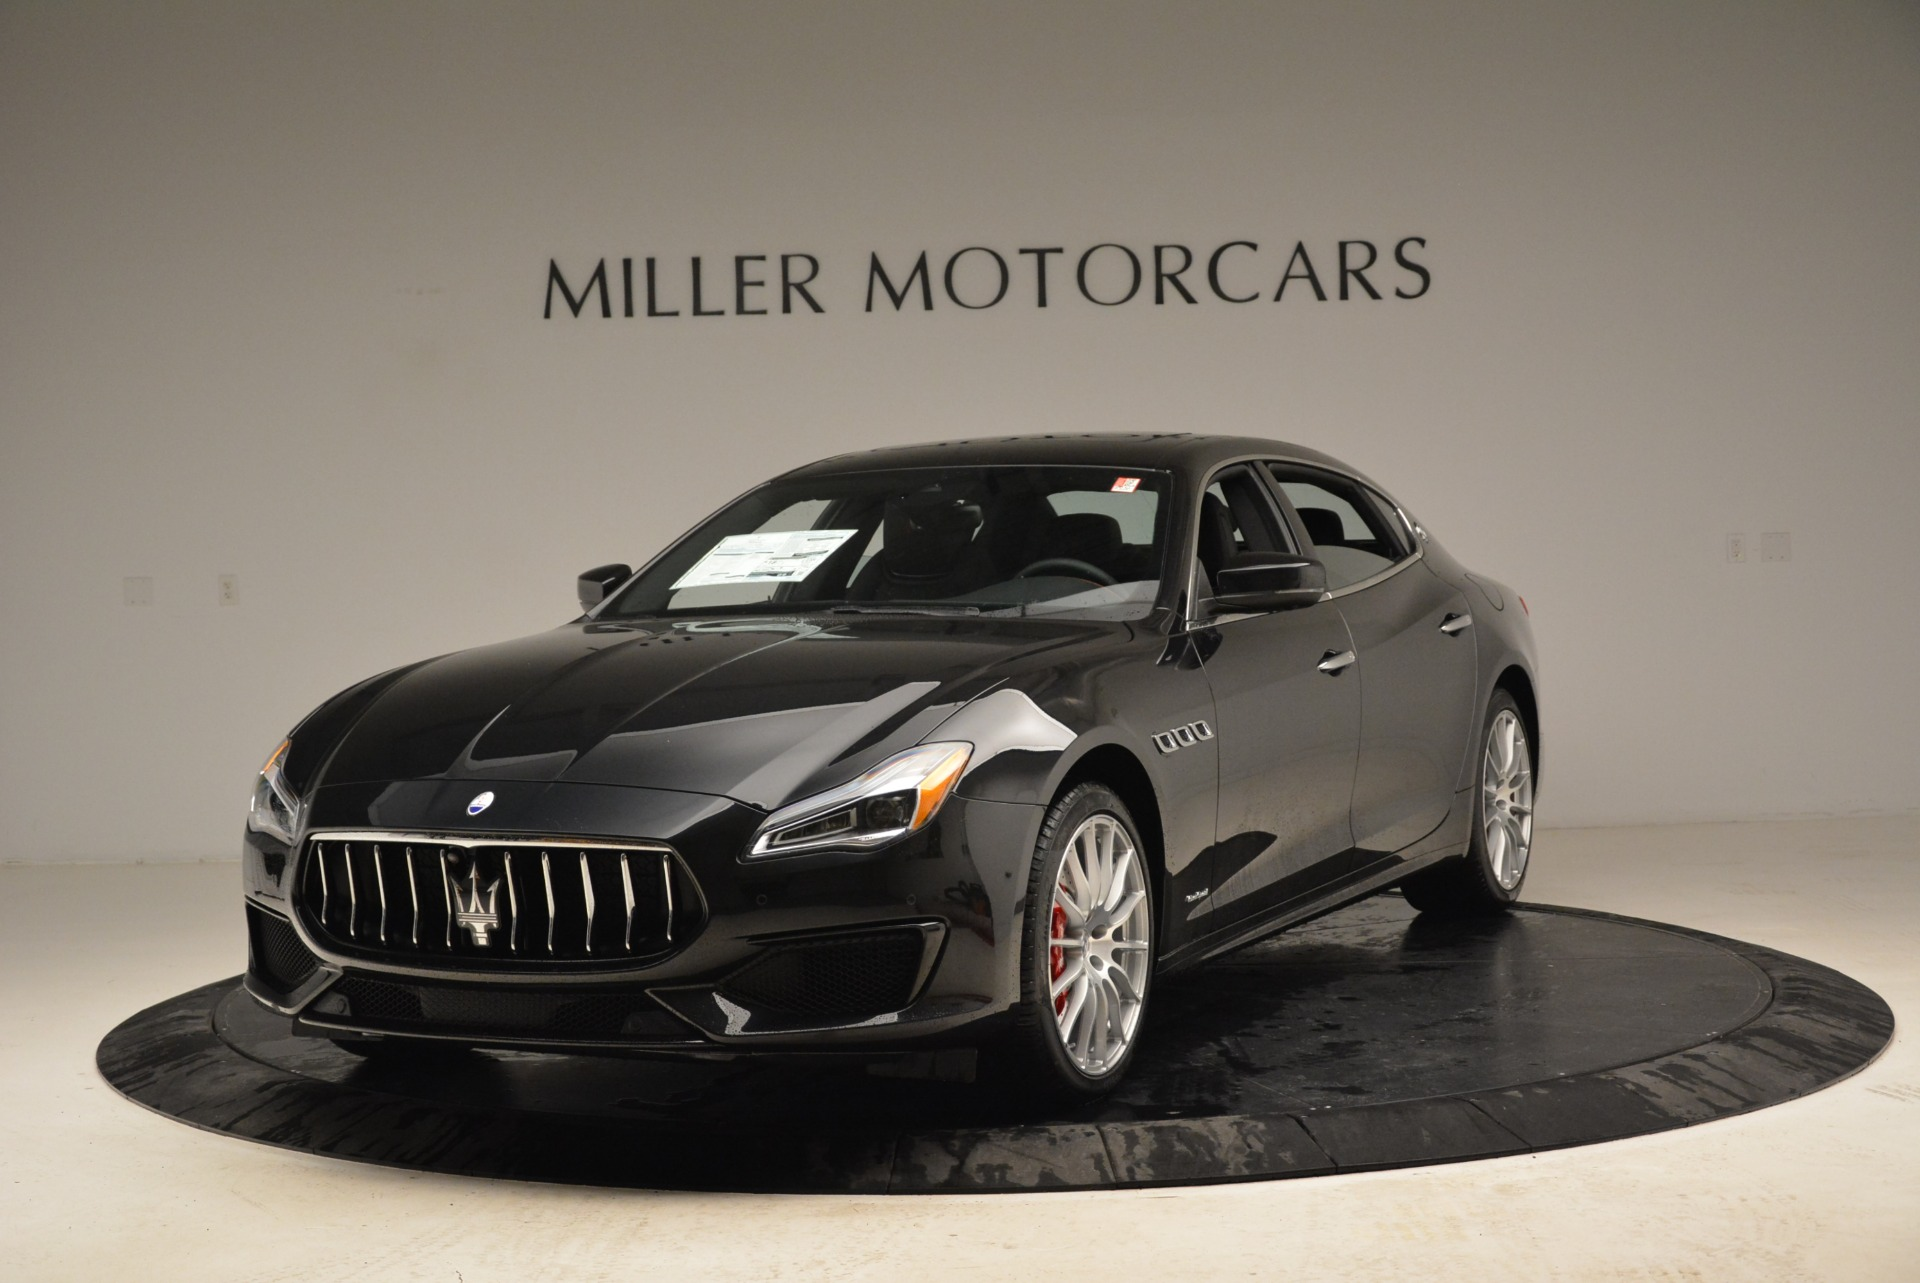 New 2018 Maserati Quattroporte S Q4 Gransport For Sale In Greenwich, CT 1943_p2